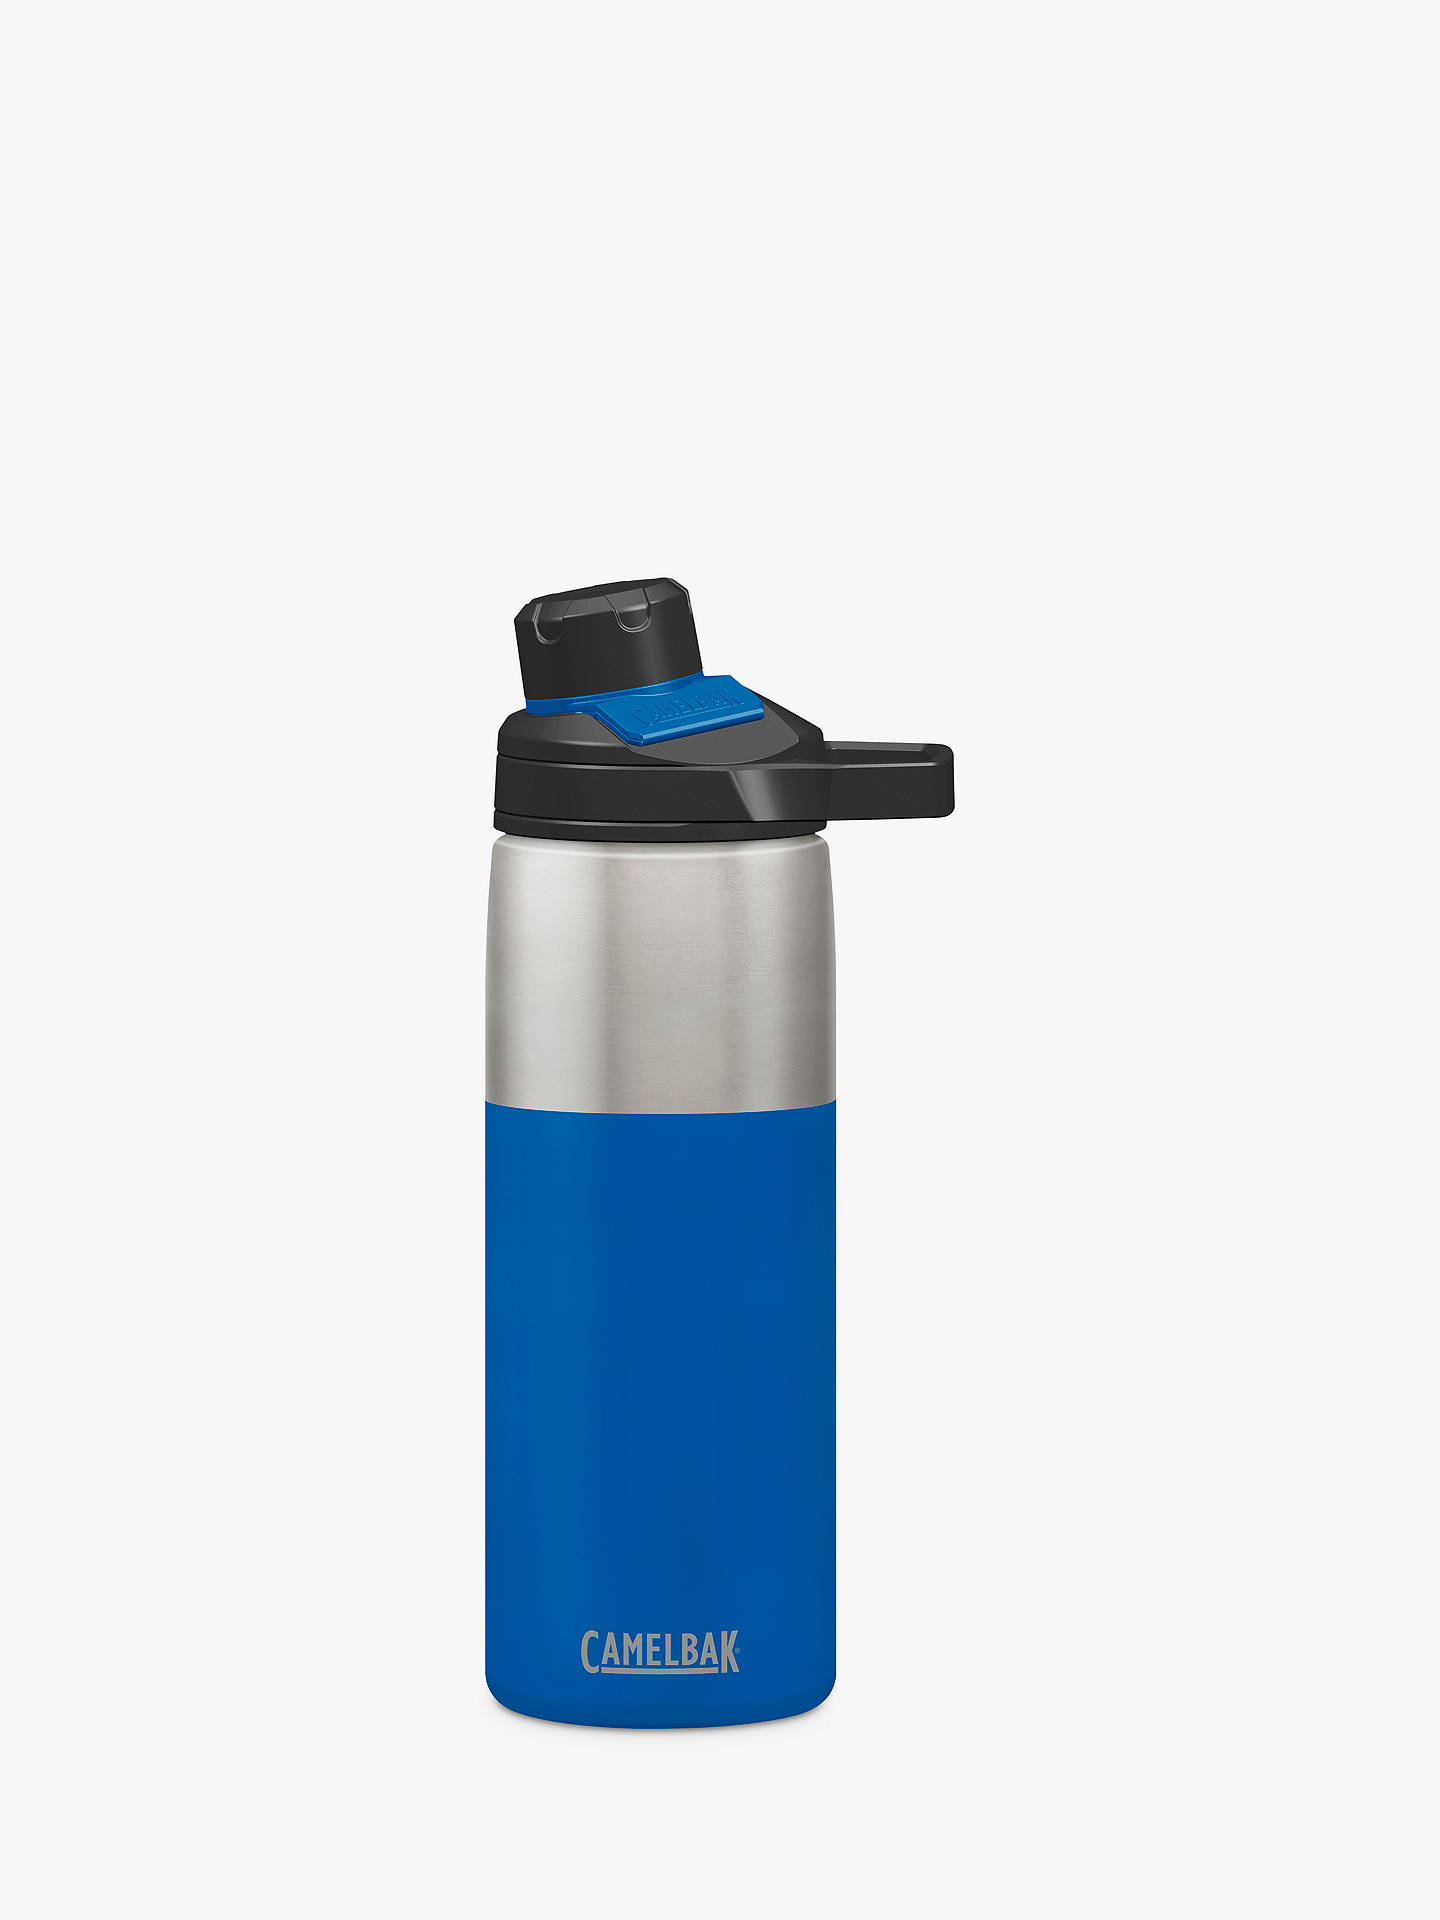 Buy CamelBak Chute Drinks Bottle with Magnetic Handle, Blue, 600ml Online at johnlewis.com